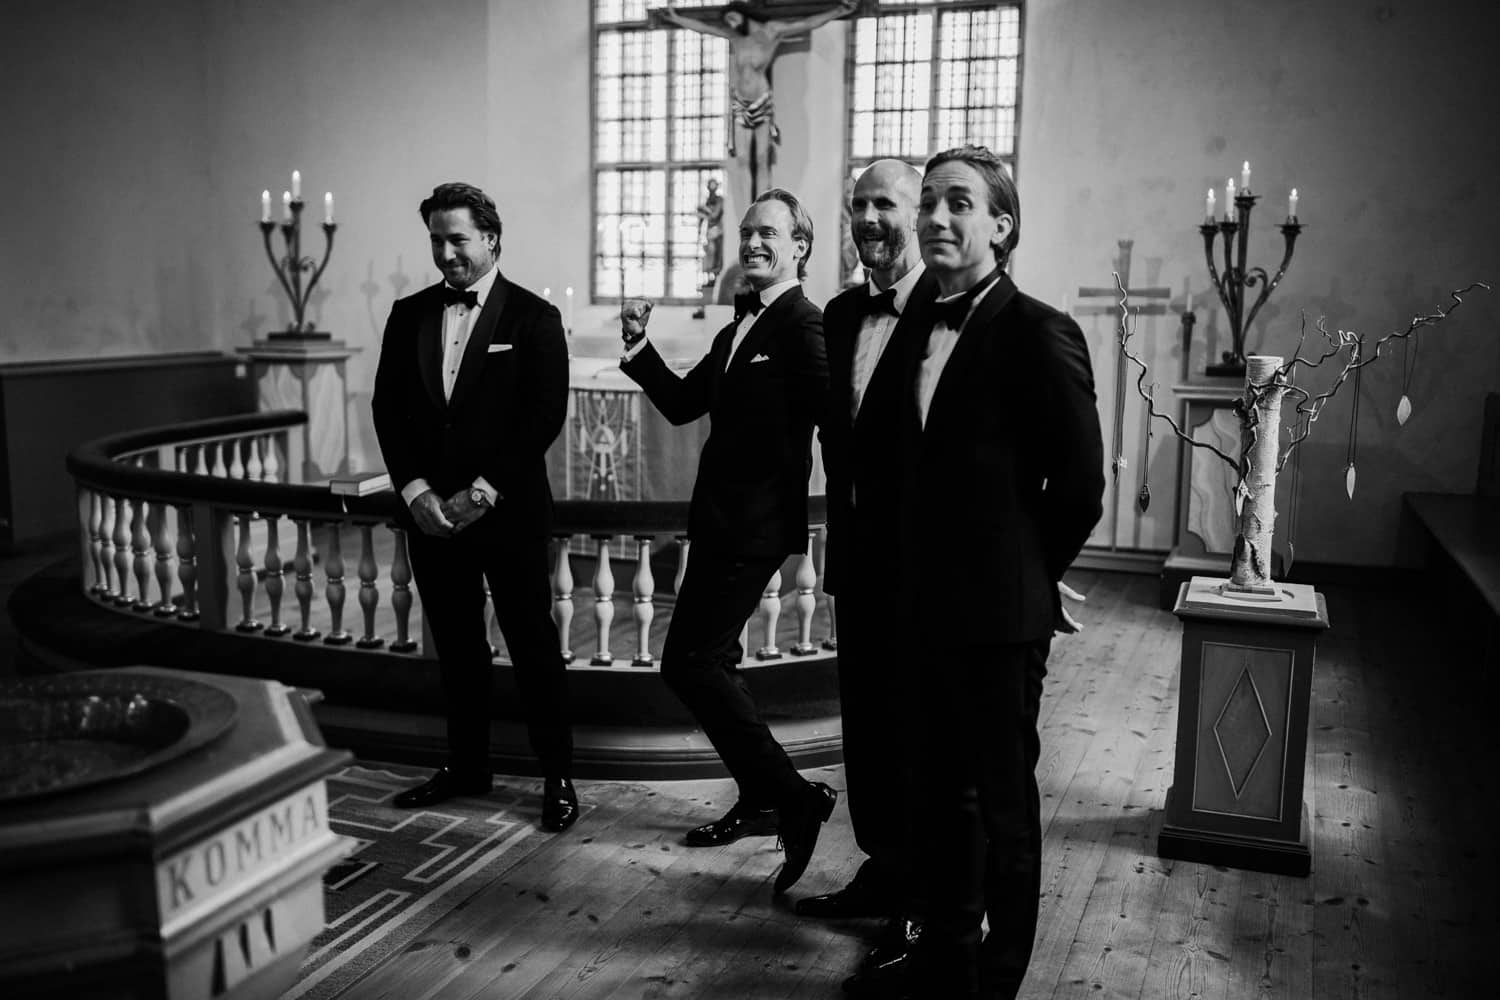 The groom and his groomsmen are waiting for the bride at the altar.